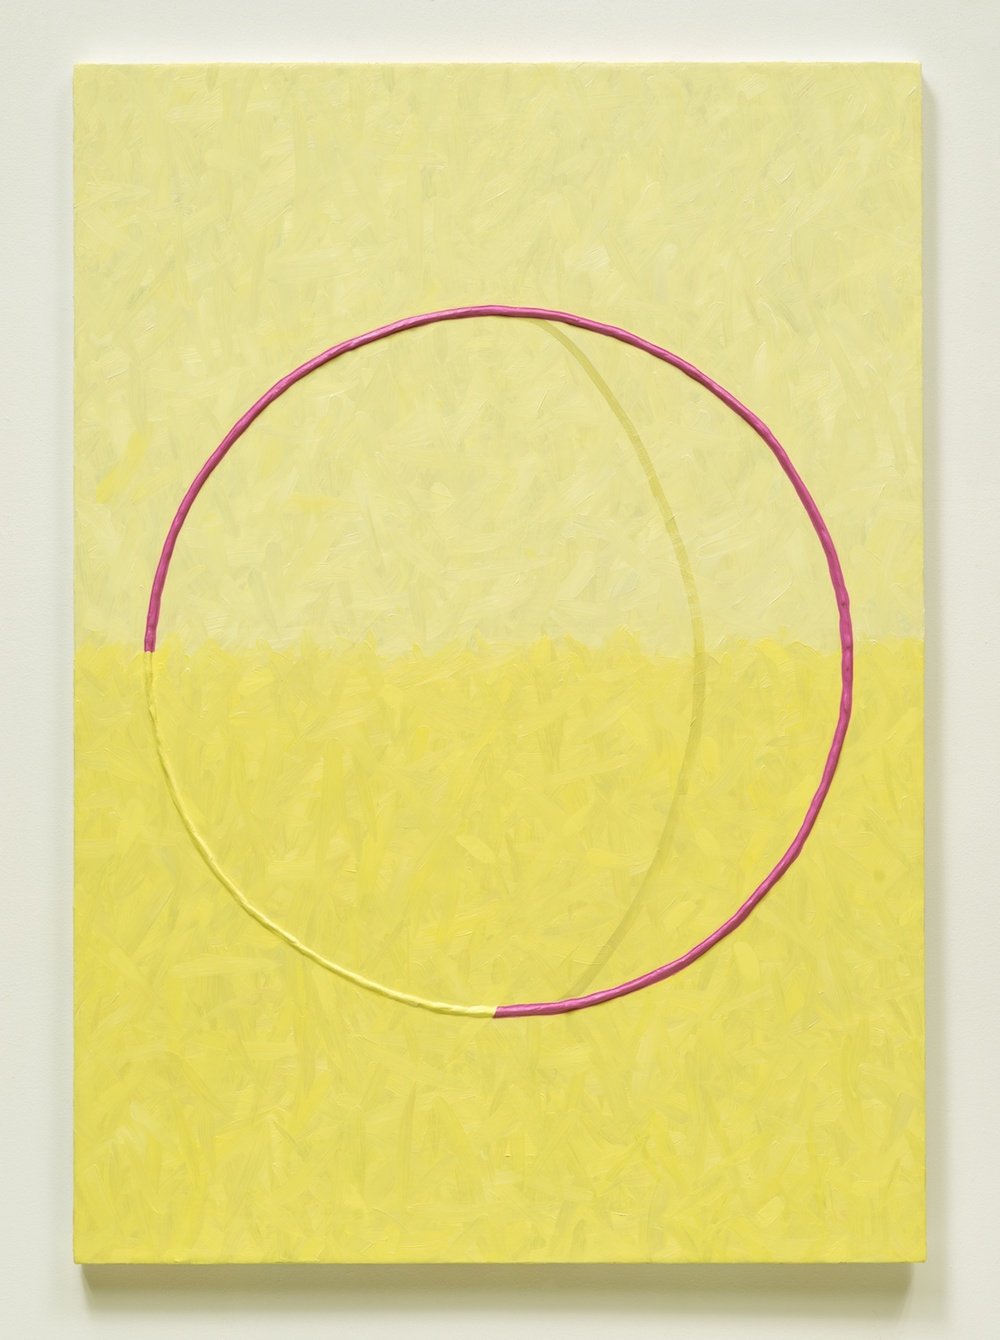 "Alex Olson Lure (4) 2014 Oil and modeling paste on linen 41"" x 29"" AO157"